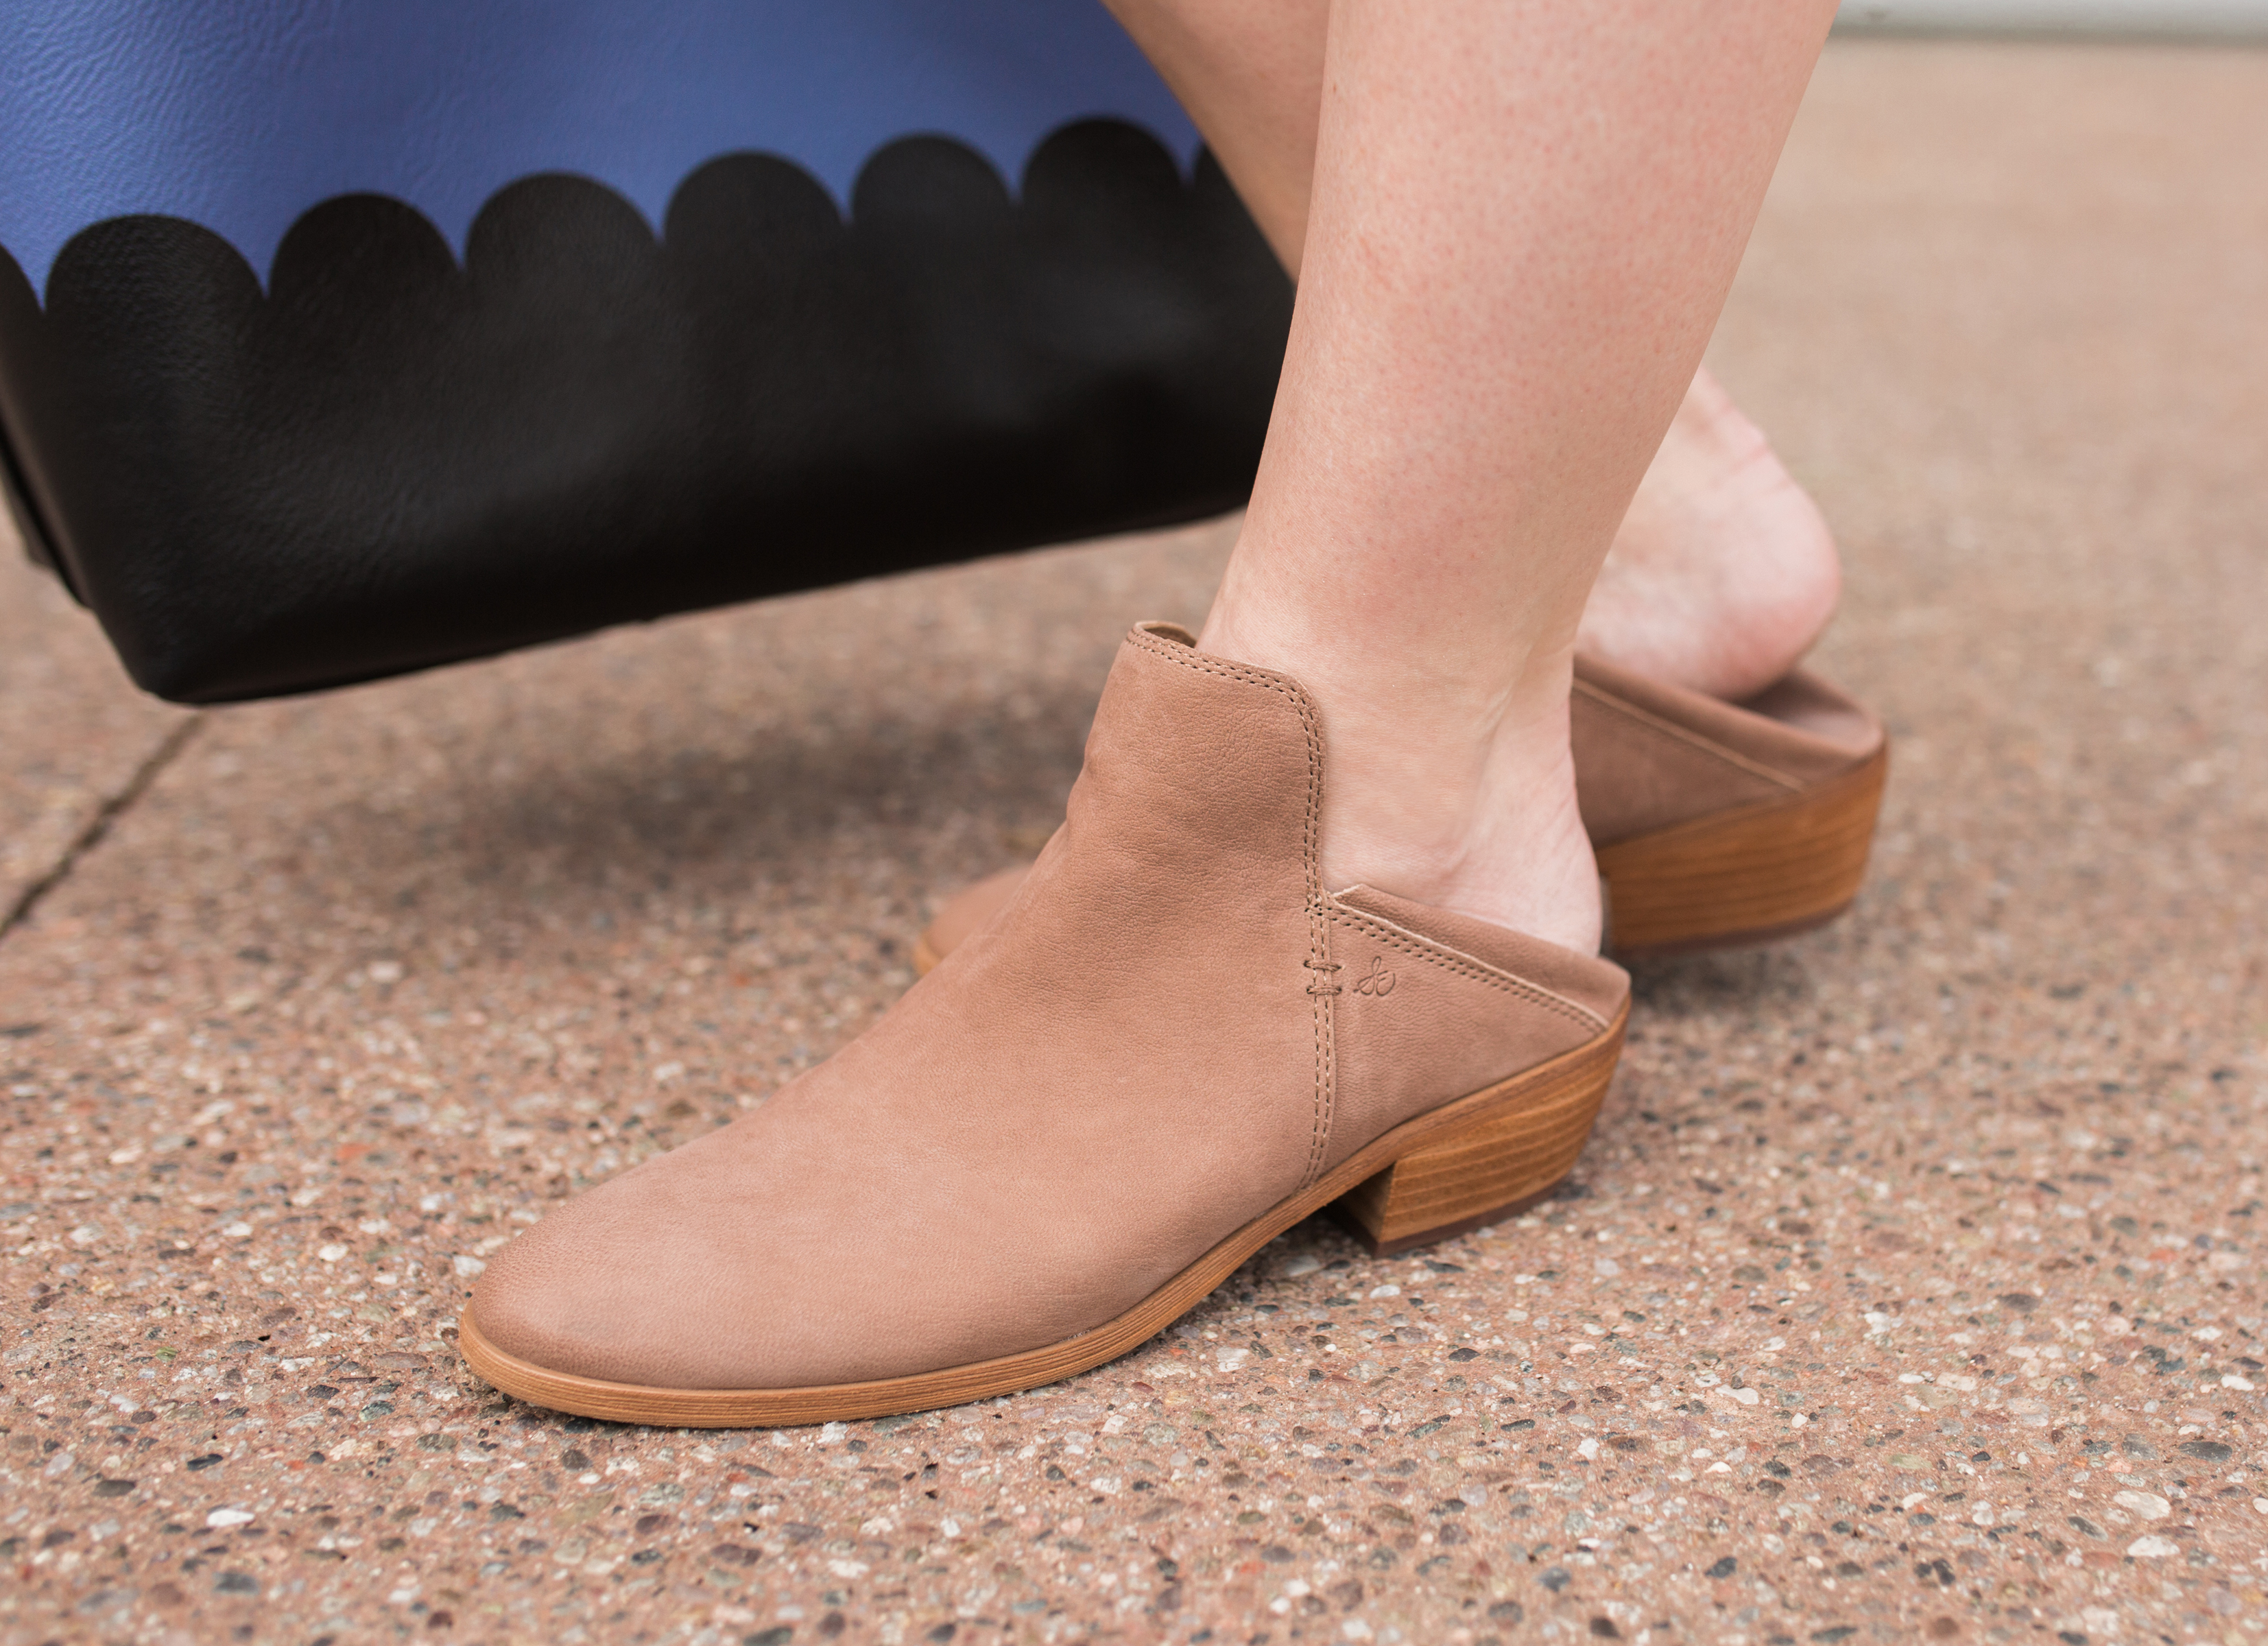 Neutral Sam Edelman Mule Booties